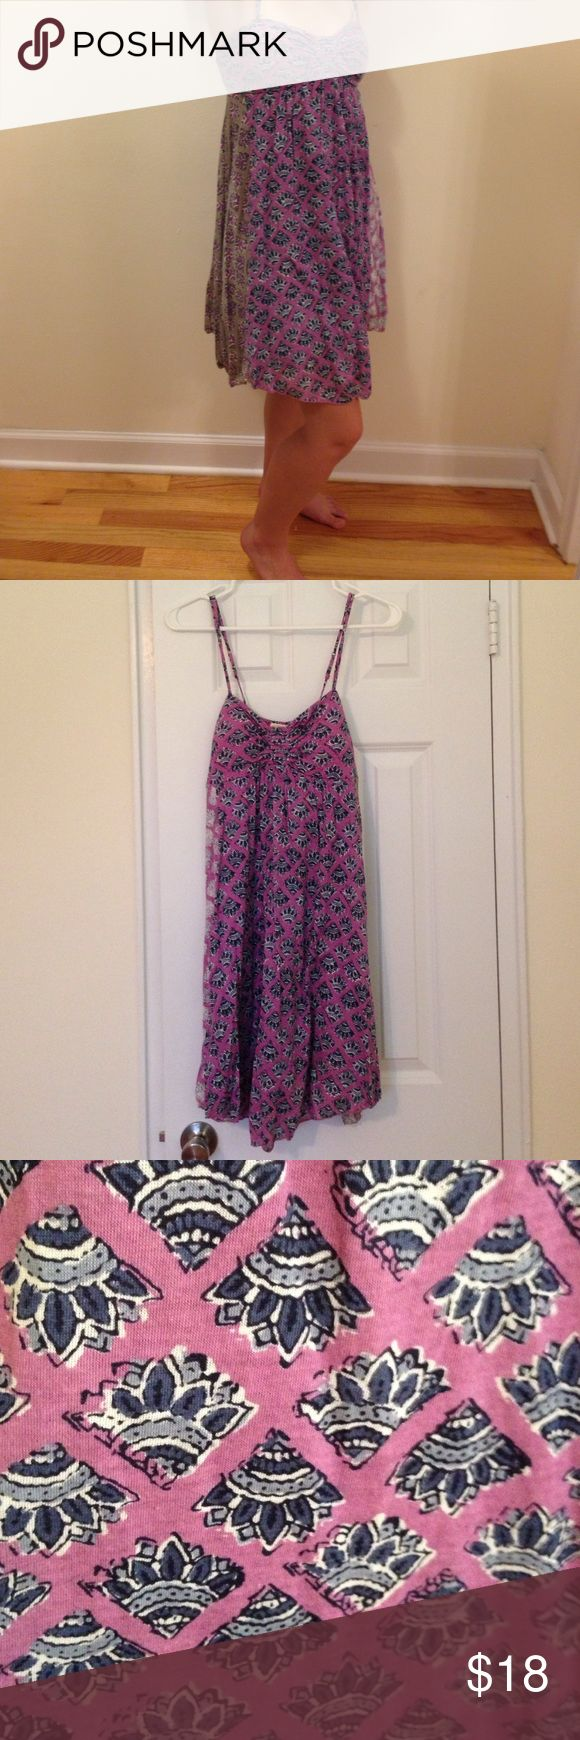 American Eagle Outfitters Sundress American Eagle Outfitters Sundress - Purple and blue pattern. Padded cups in chest are removable. Adjustable straps. Only worn once. American Eagle Outfitters Dresses